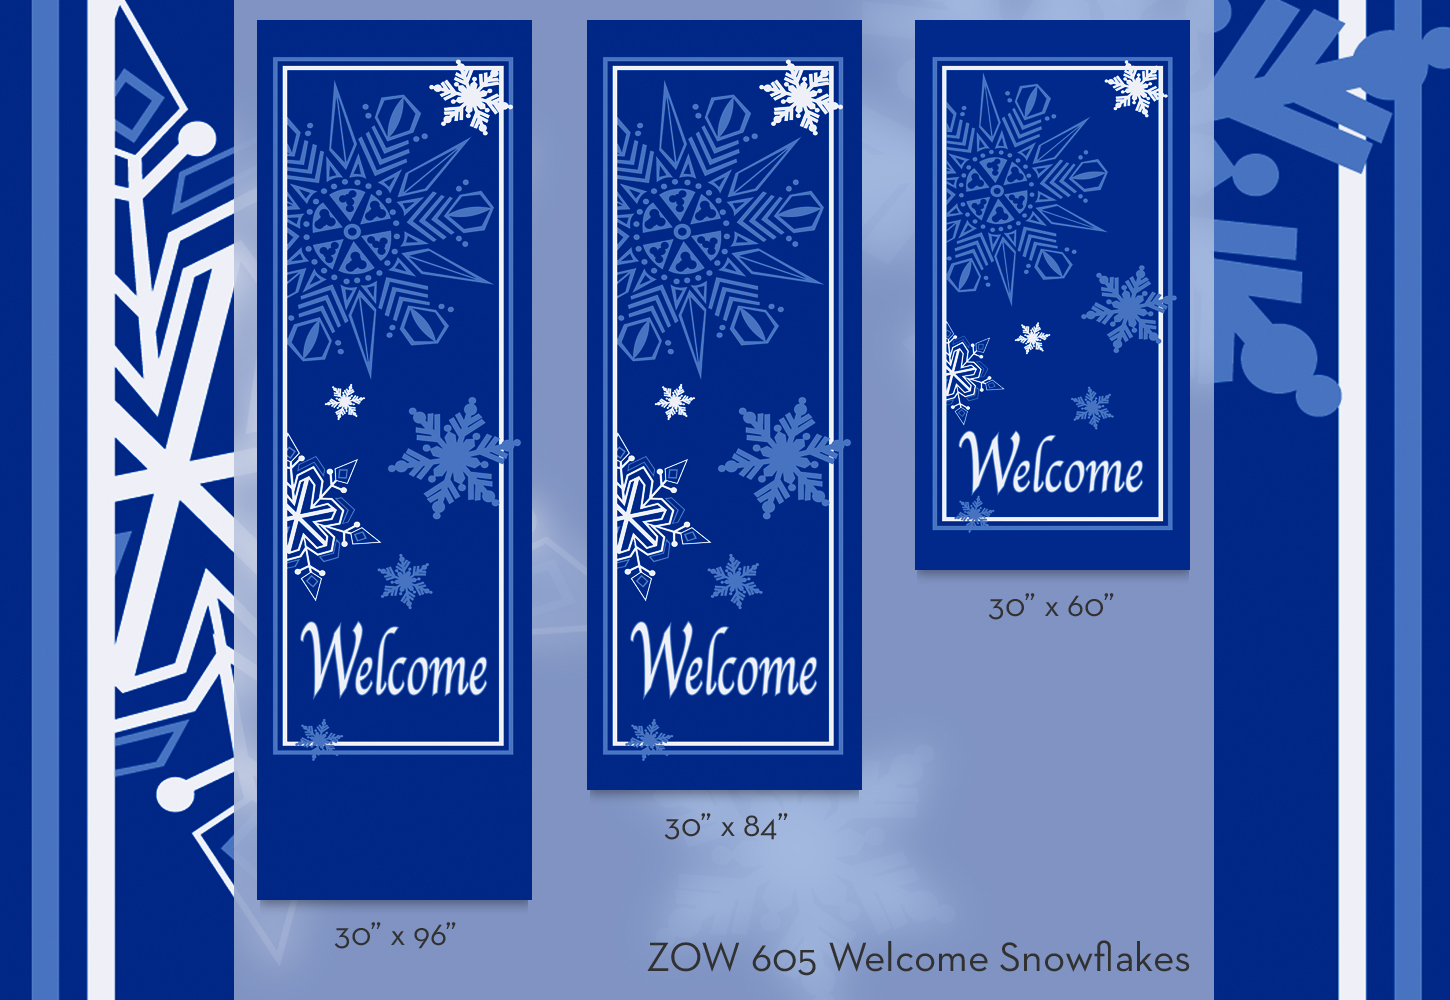 ZOW 605 Welcome Snowflakes